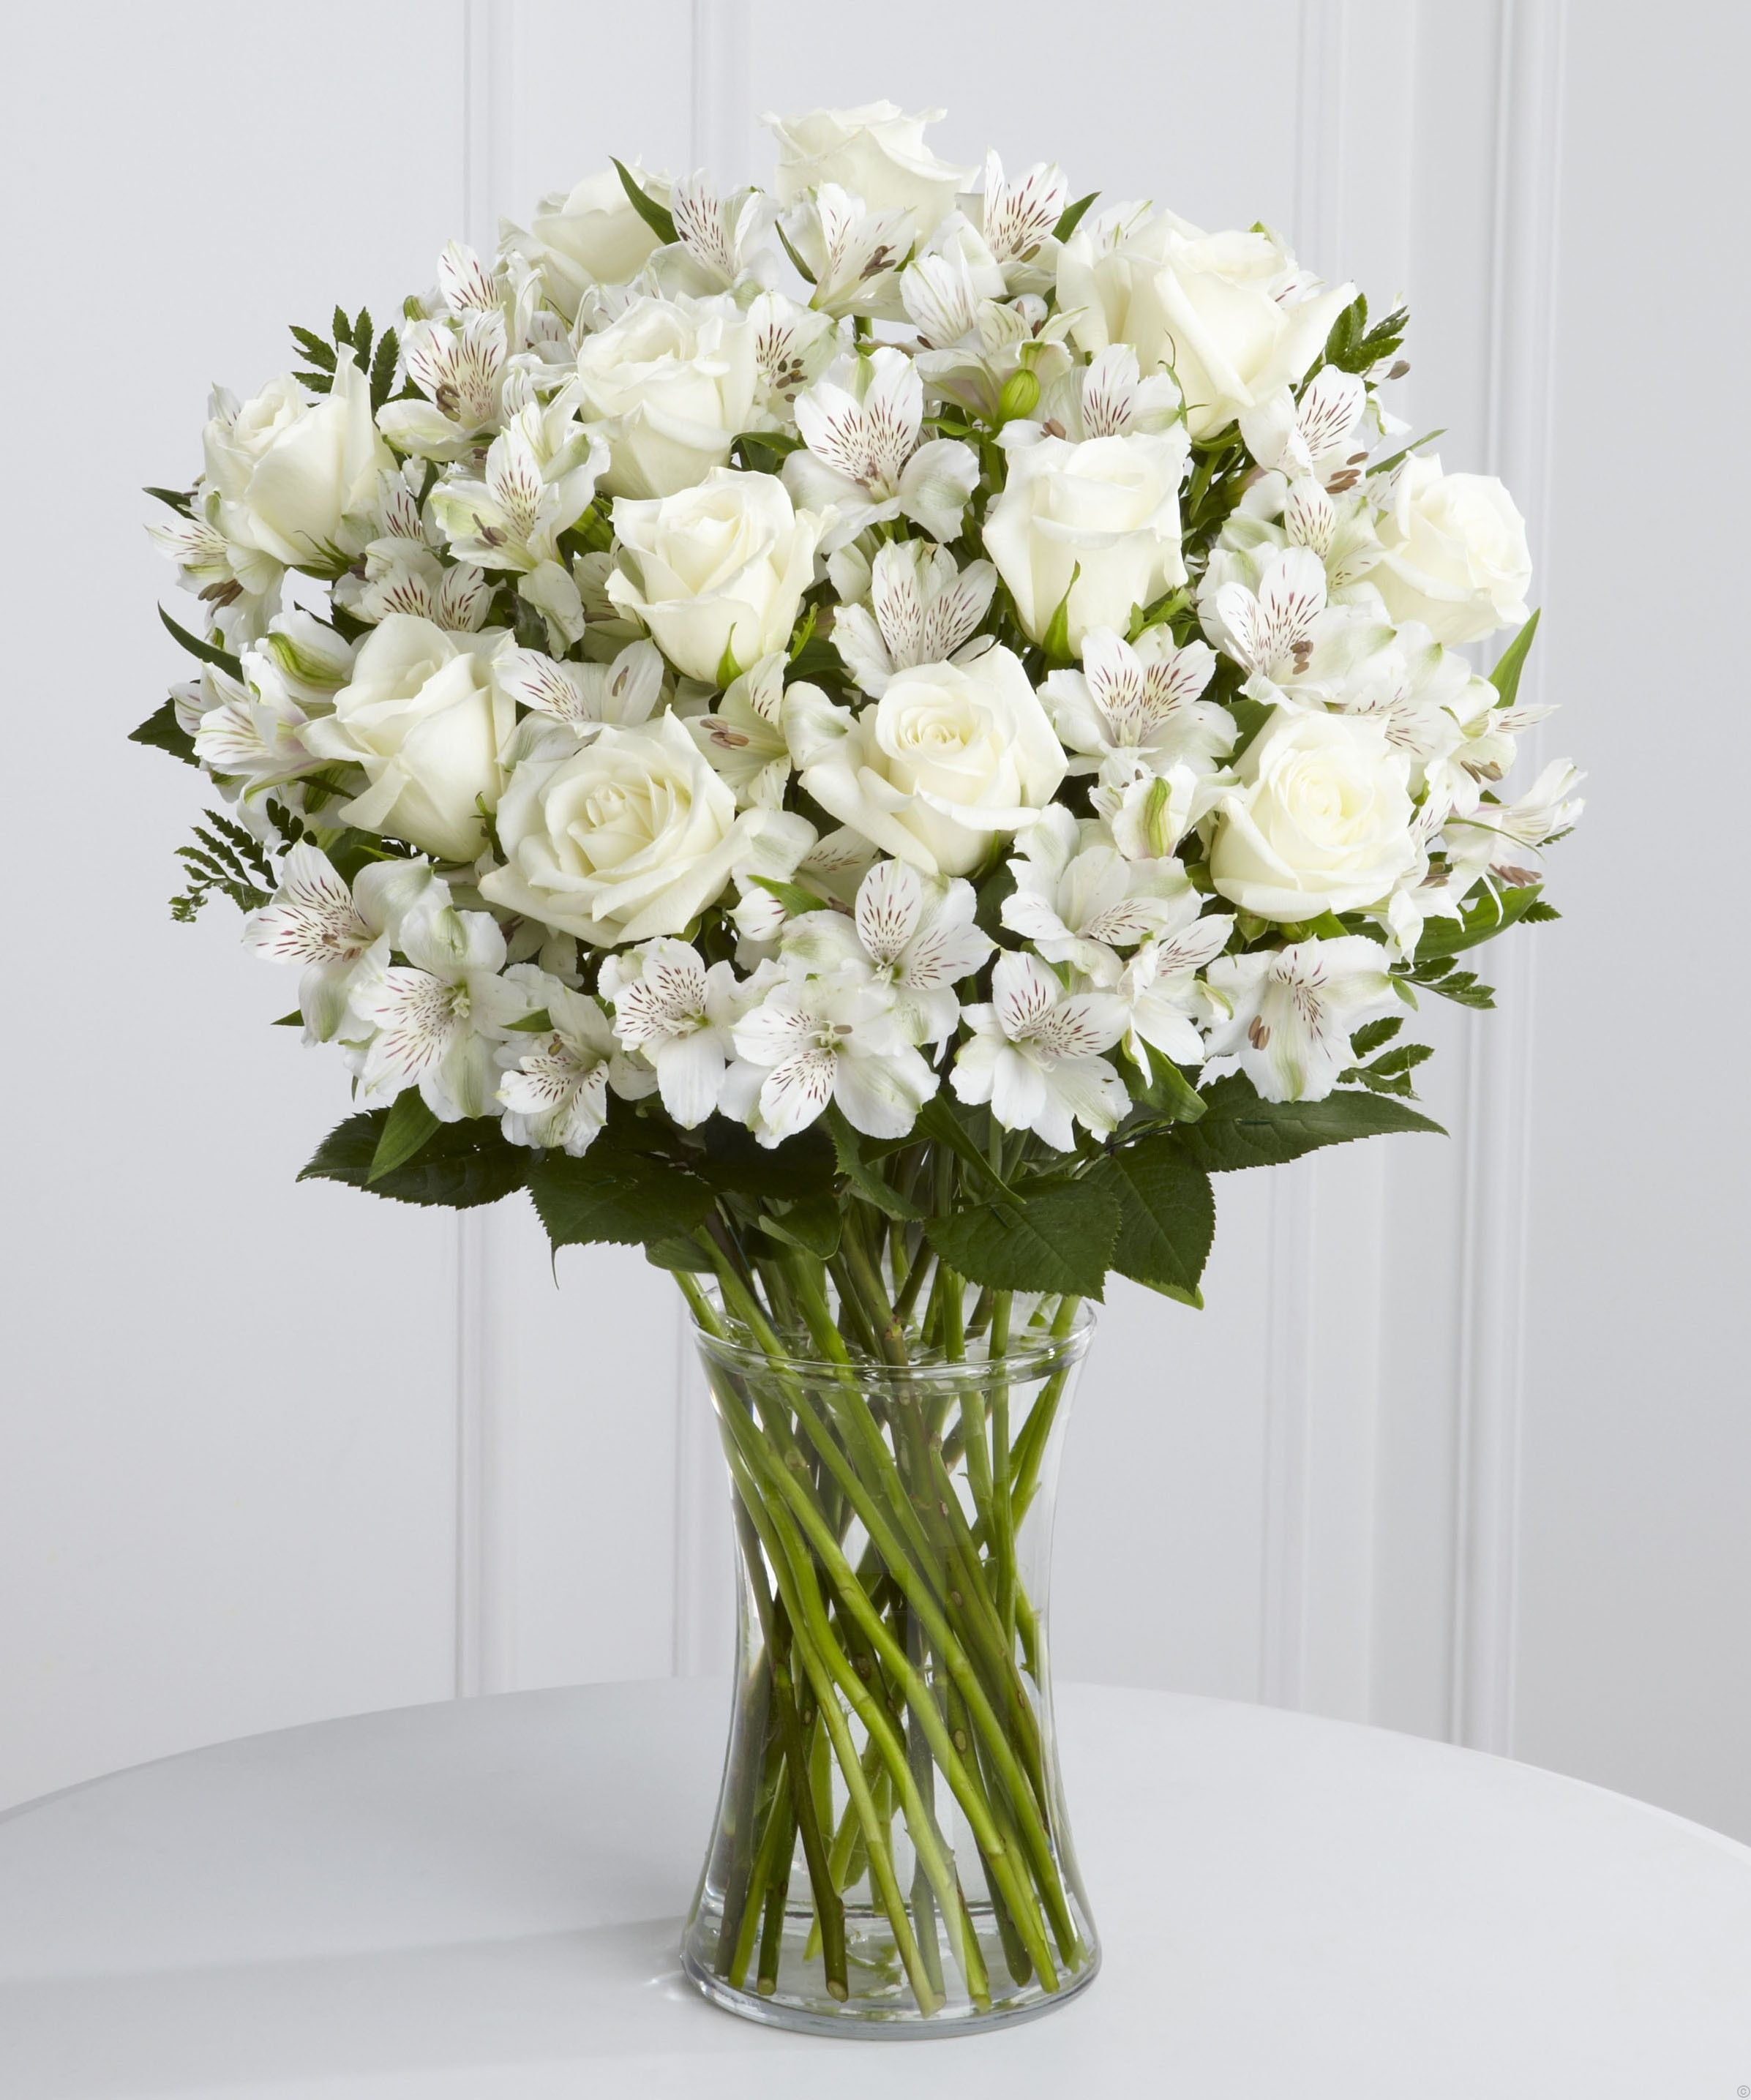 White Rose And Alstroemeria Vase The Bouquet Pinterest Flowers